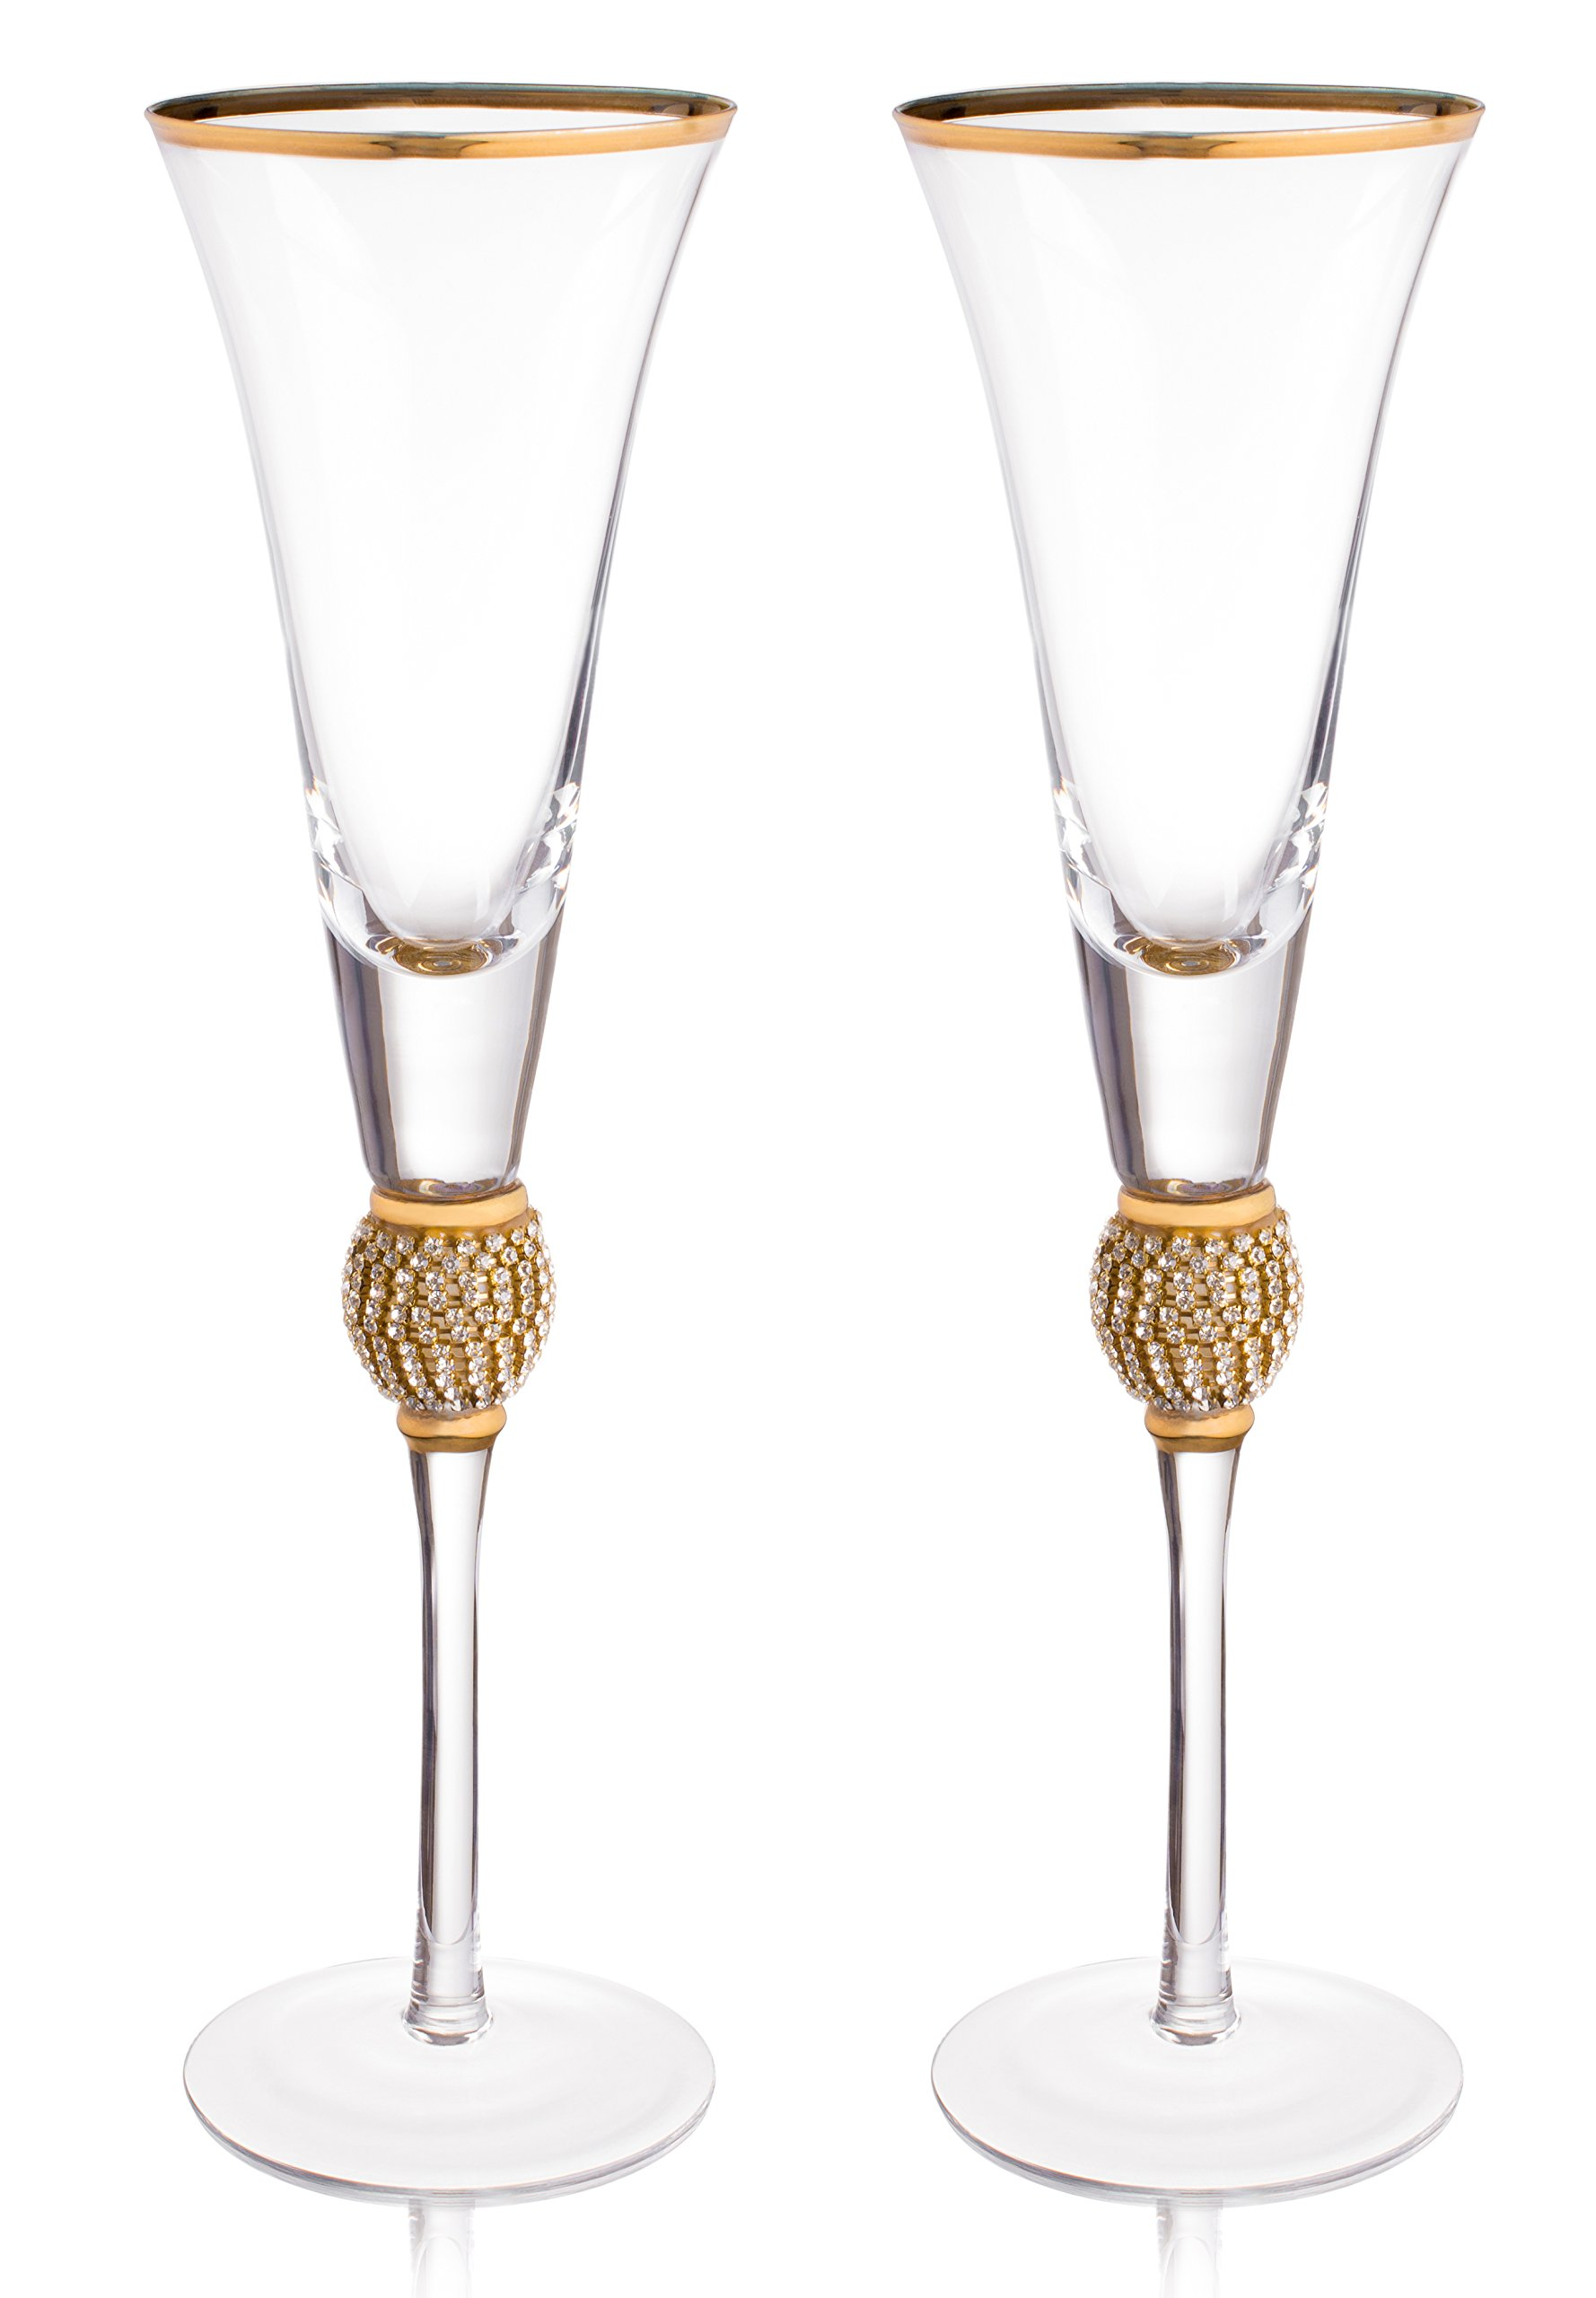 Trinkware Wedding Champagne Flutes - Rhinestone''DIAMOND'' Studded Toasting Glasses With Gold Rim - Long Stem, 7oz, 11-inches Tall – Elegant Glassware And Stemware - Set of 2 For Bride And Groom